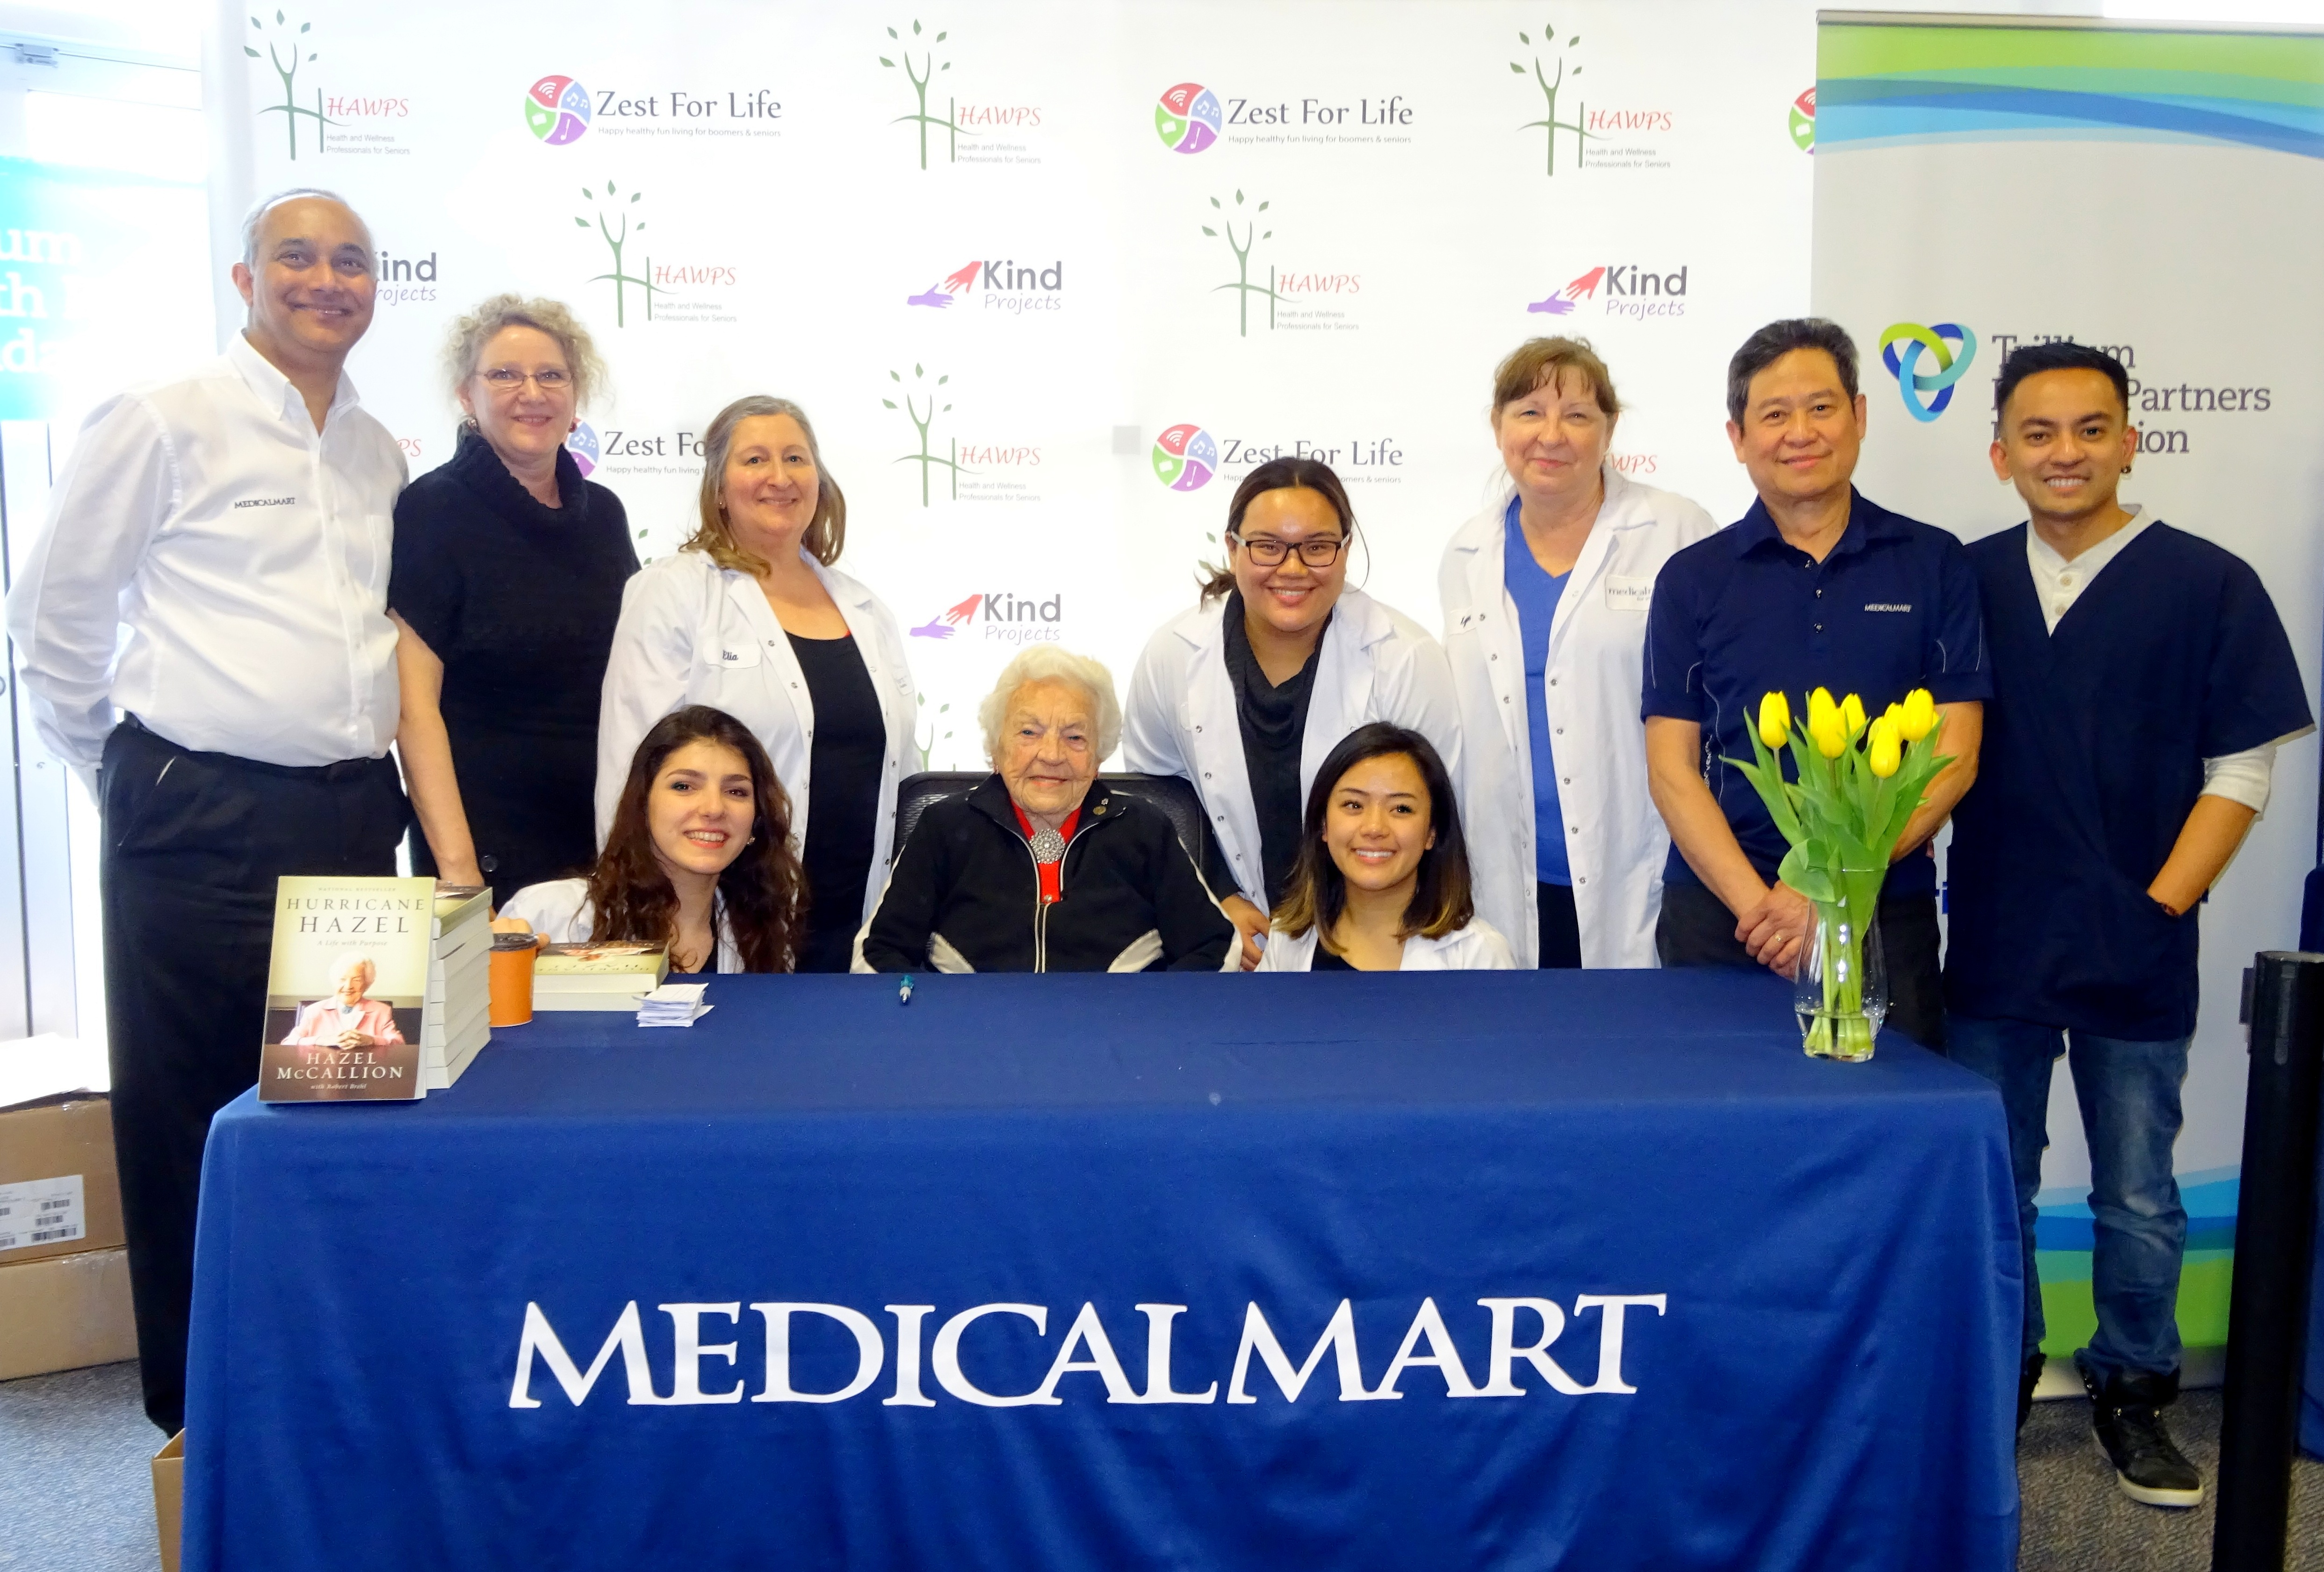 Medical Mart Staff with Hazel McCallion Photo by I Lee 25 March 2017